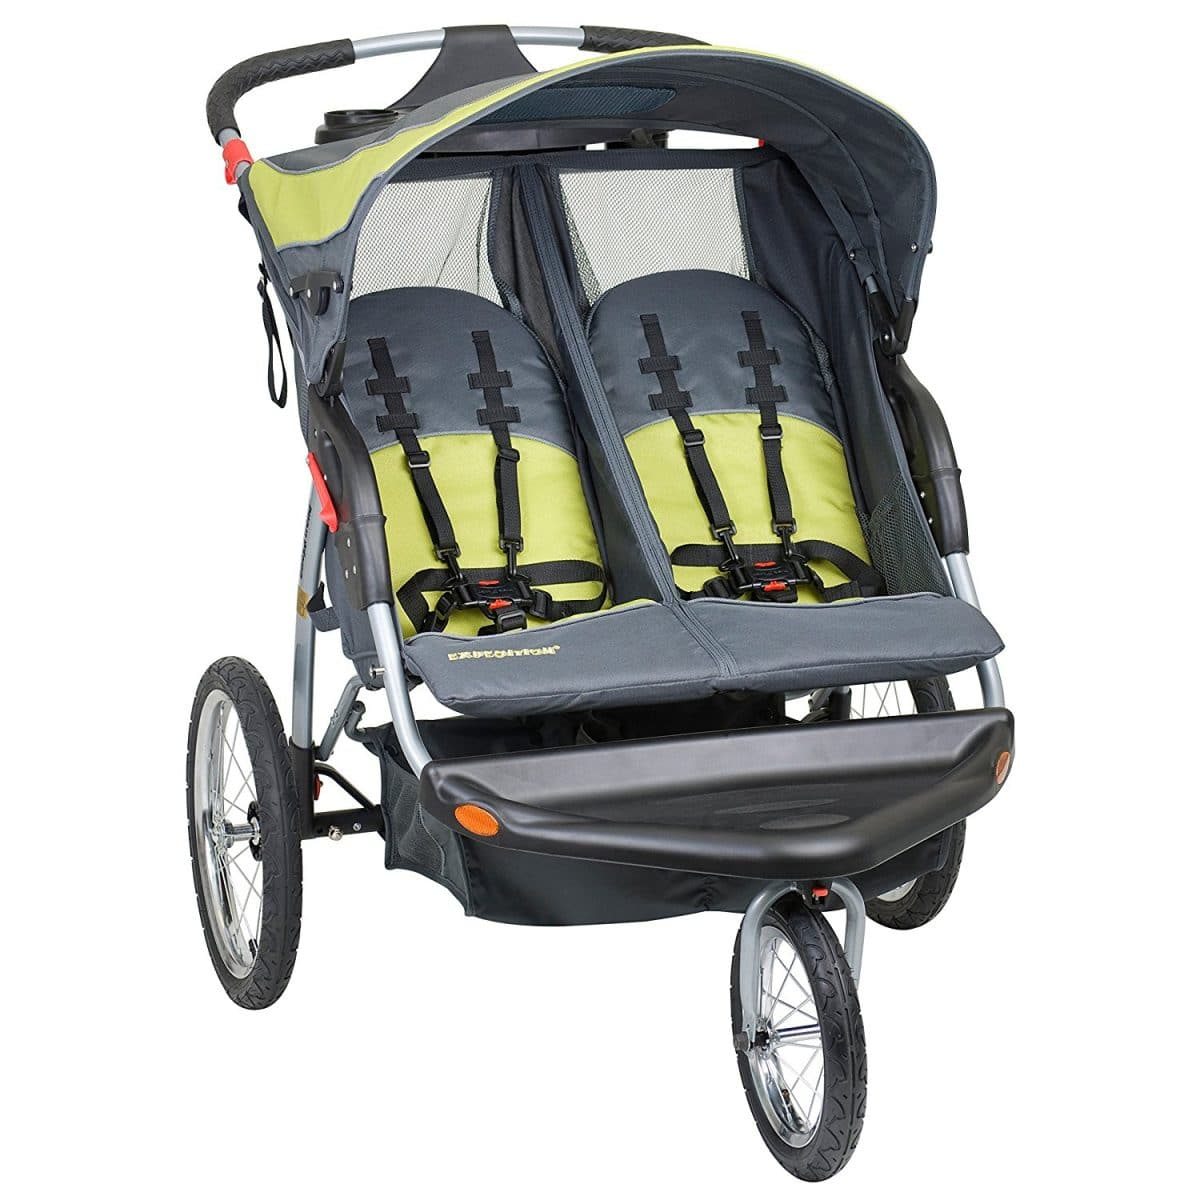 The 10 Best Double Jogging Strollers to Buy 2019 - LittleOneMag